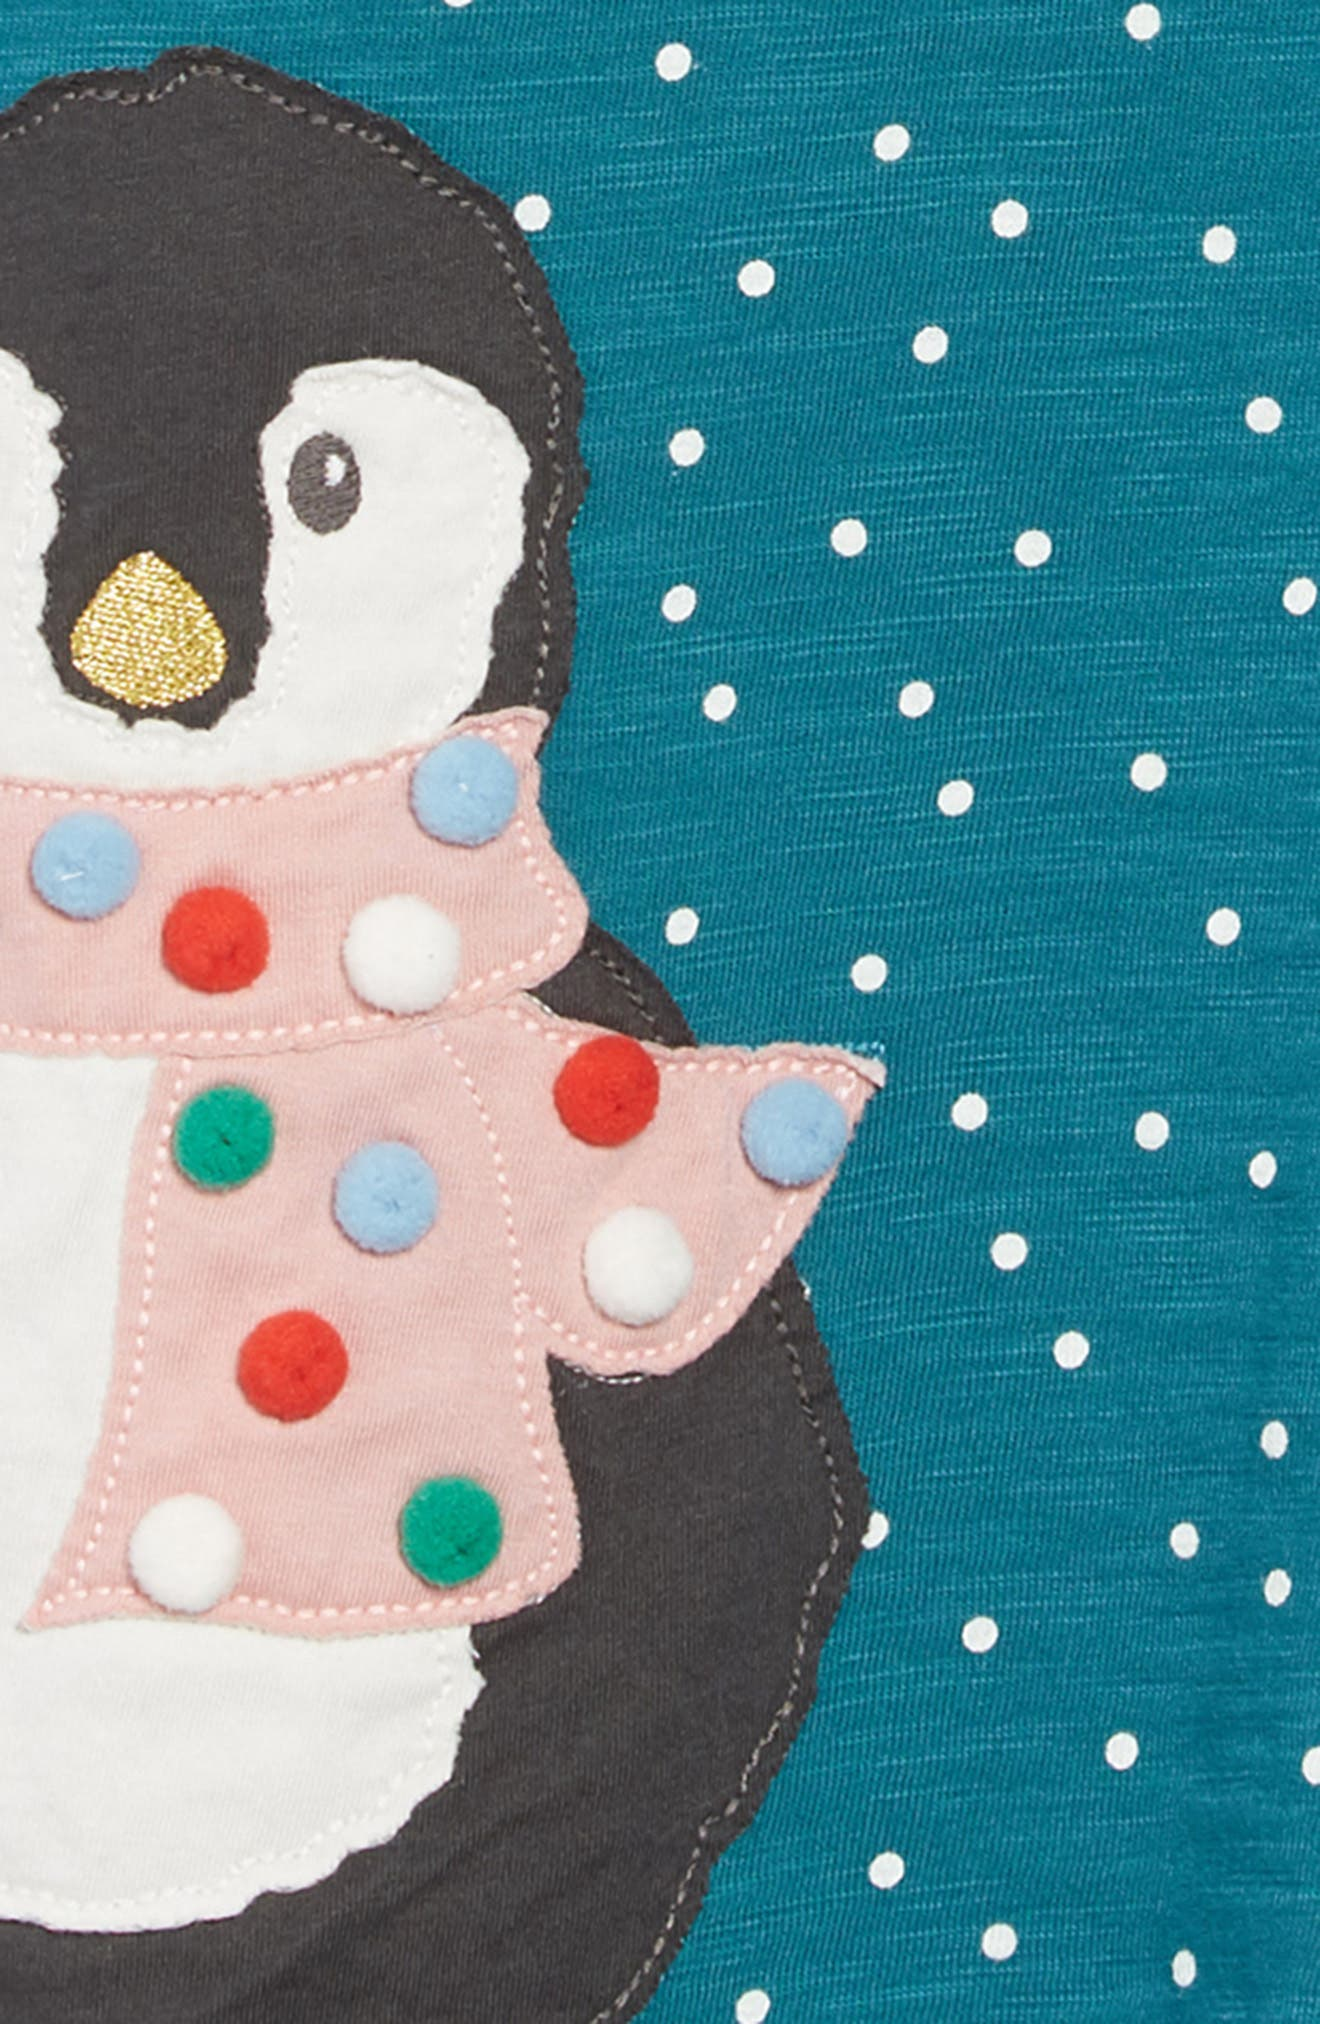 Mini Boden Spotty Animal Appliqué Dress,                             Alternate thumbnail 3, color,                             DGR DRAKE GREEN PENGUIN